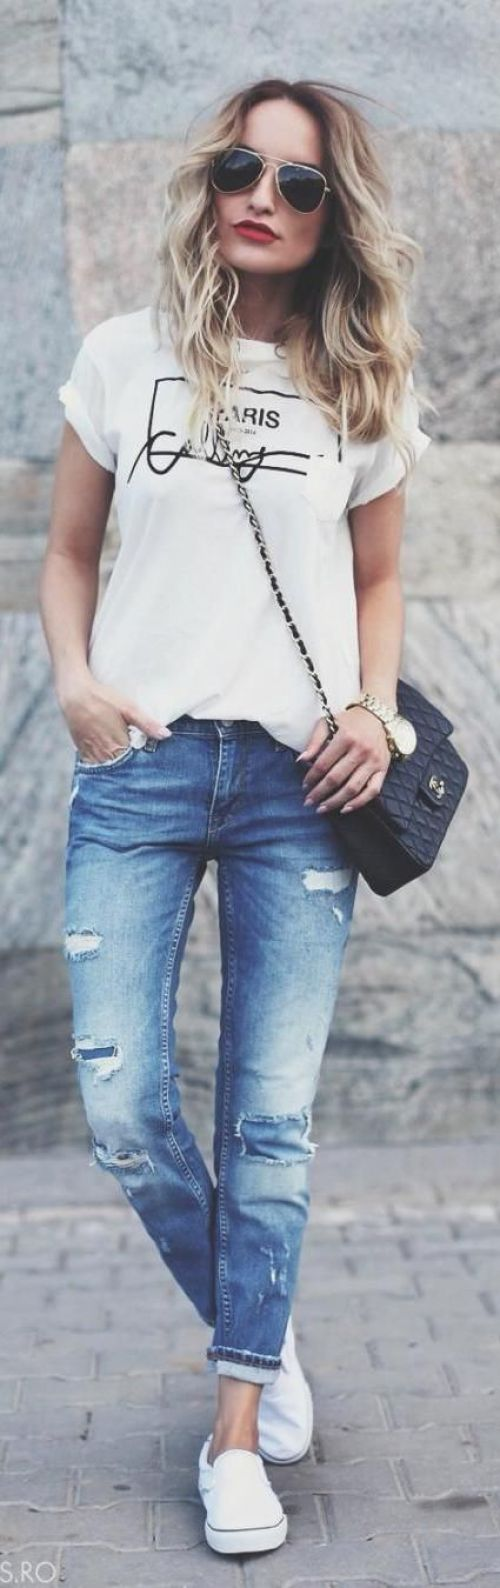 Jeans In Style 1